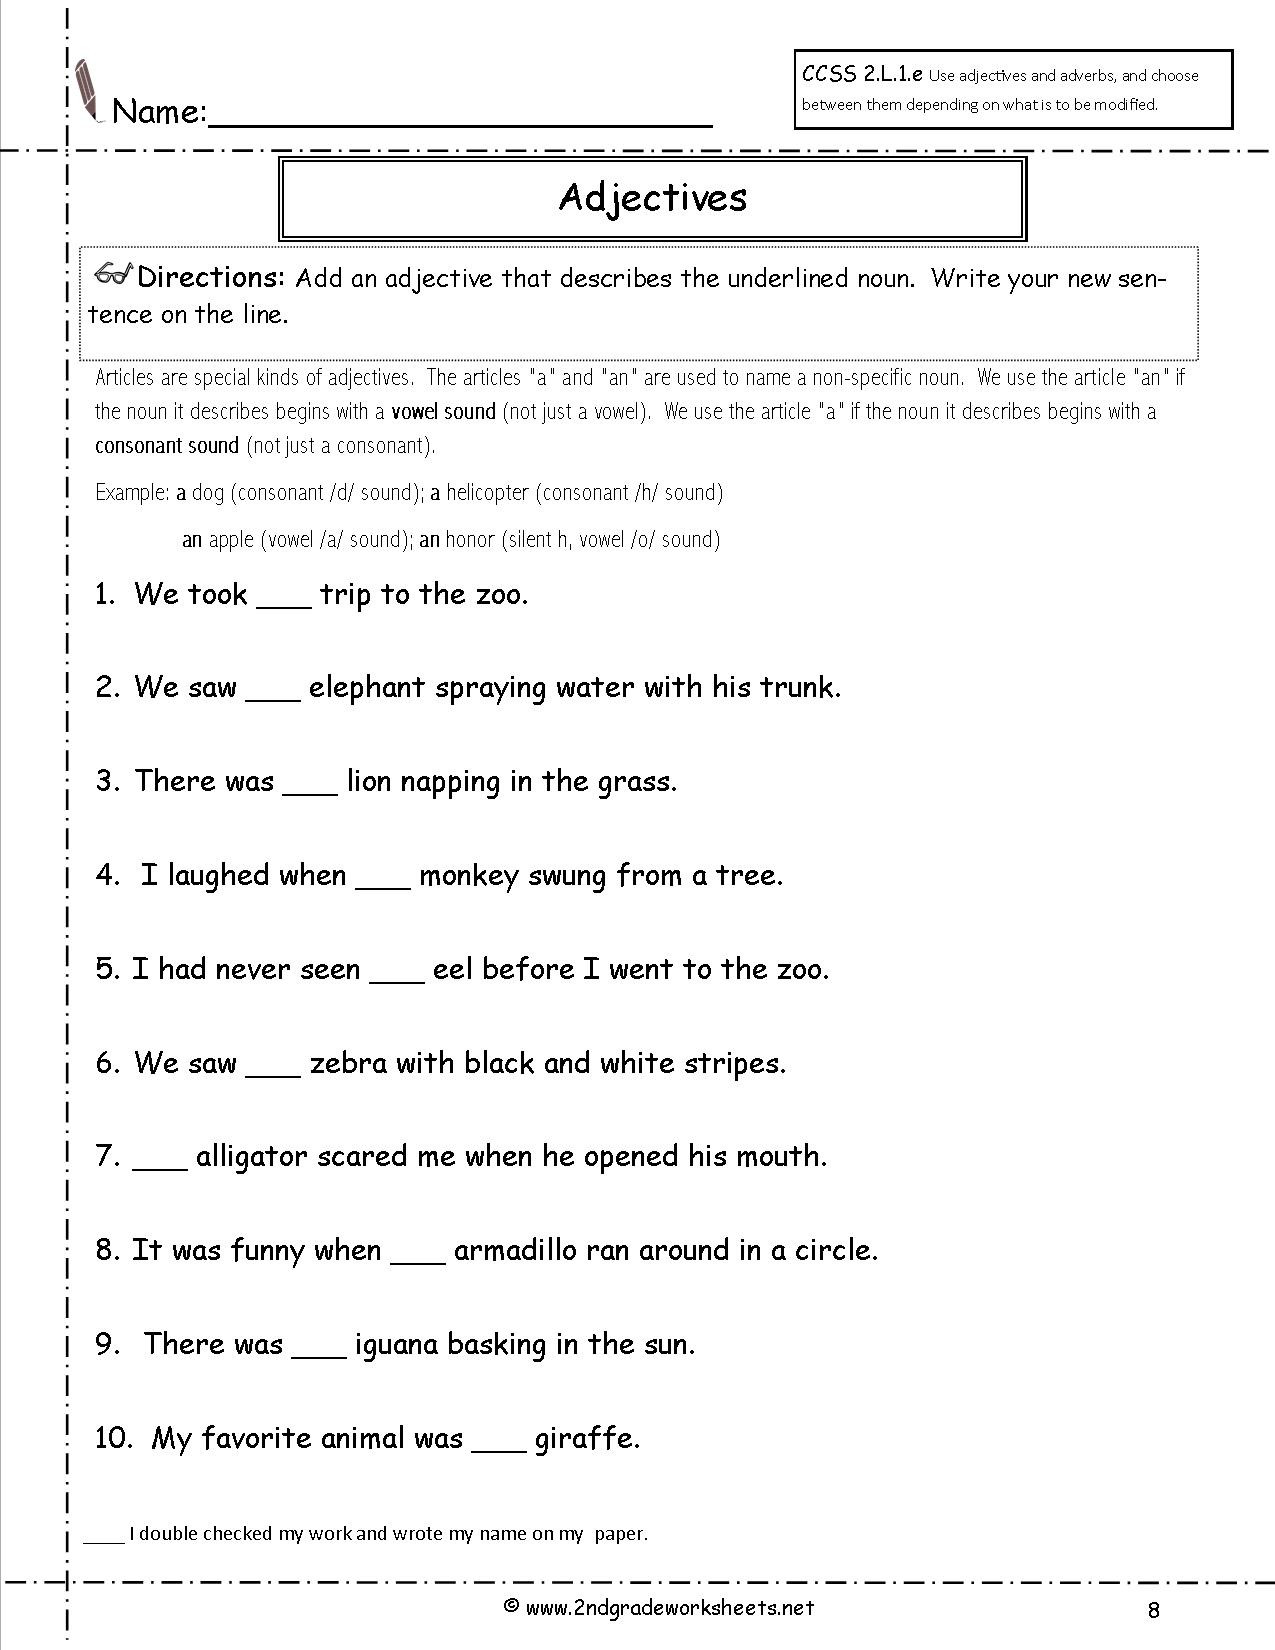 Compound Word Worksheet 2nd Grade Free Language Grammar Worksheets and Printouts 2nd Grade